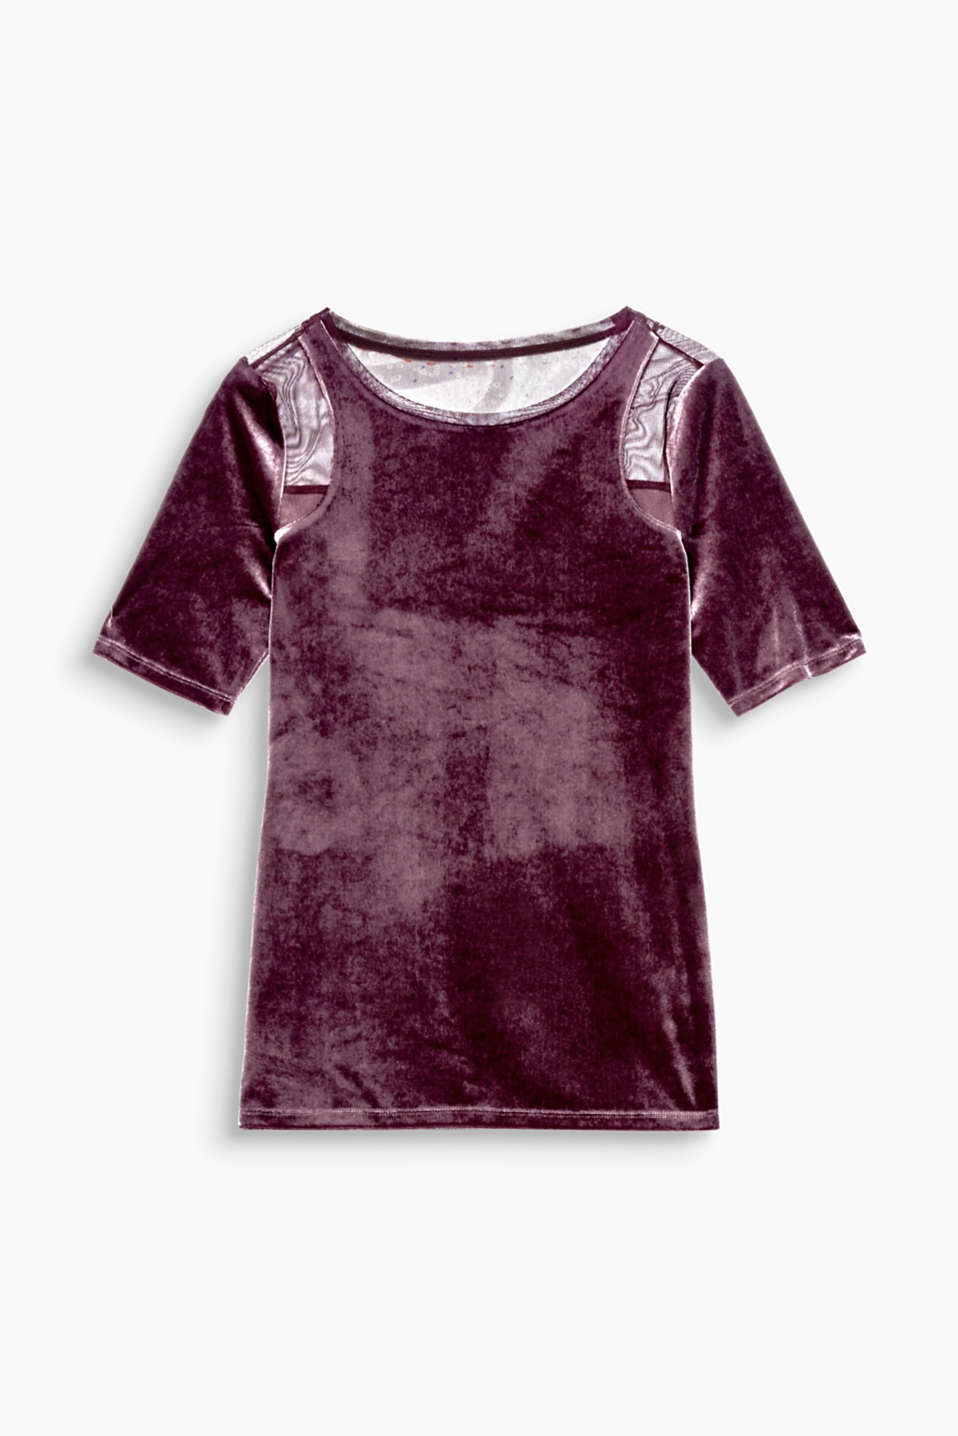 Switched up velvet: embellished with mesh inserts on the shoulders and back of this fitted T-shirt!